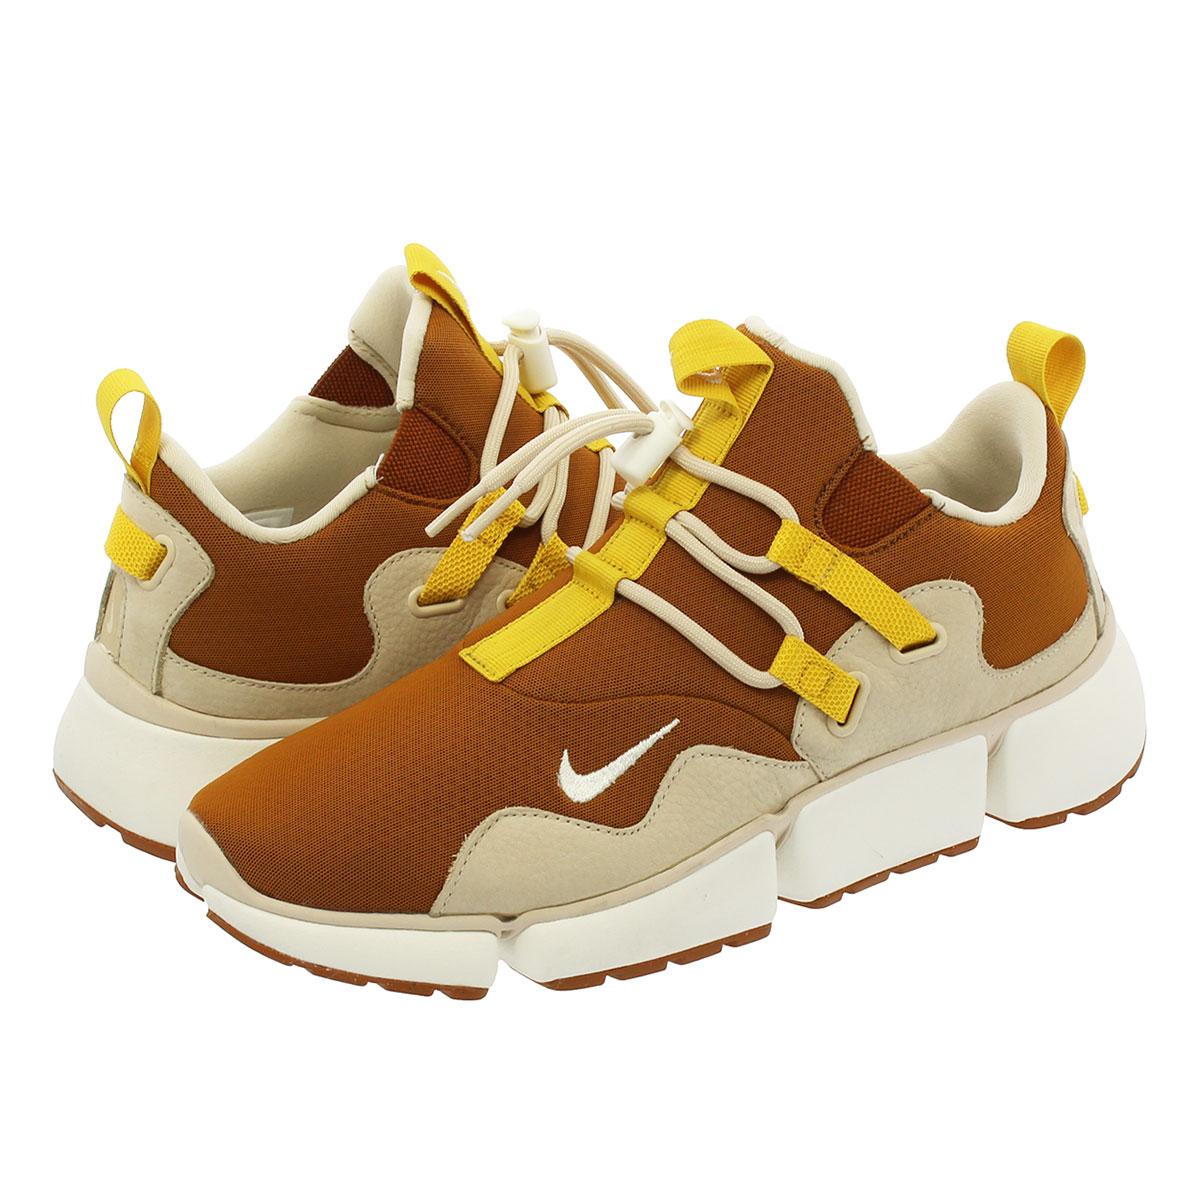 huge discount 0cbc2 b40e3 NIKELAB POCKETKNIFE DM Nike laboratory pocketknife DM TAWNYSAILMINERAL  GOLD